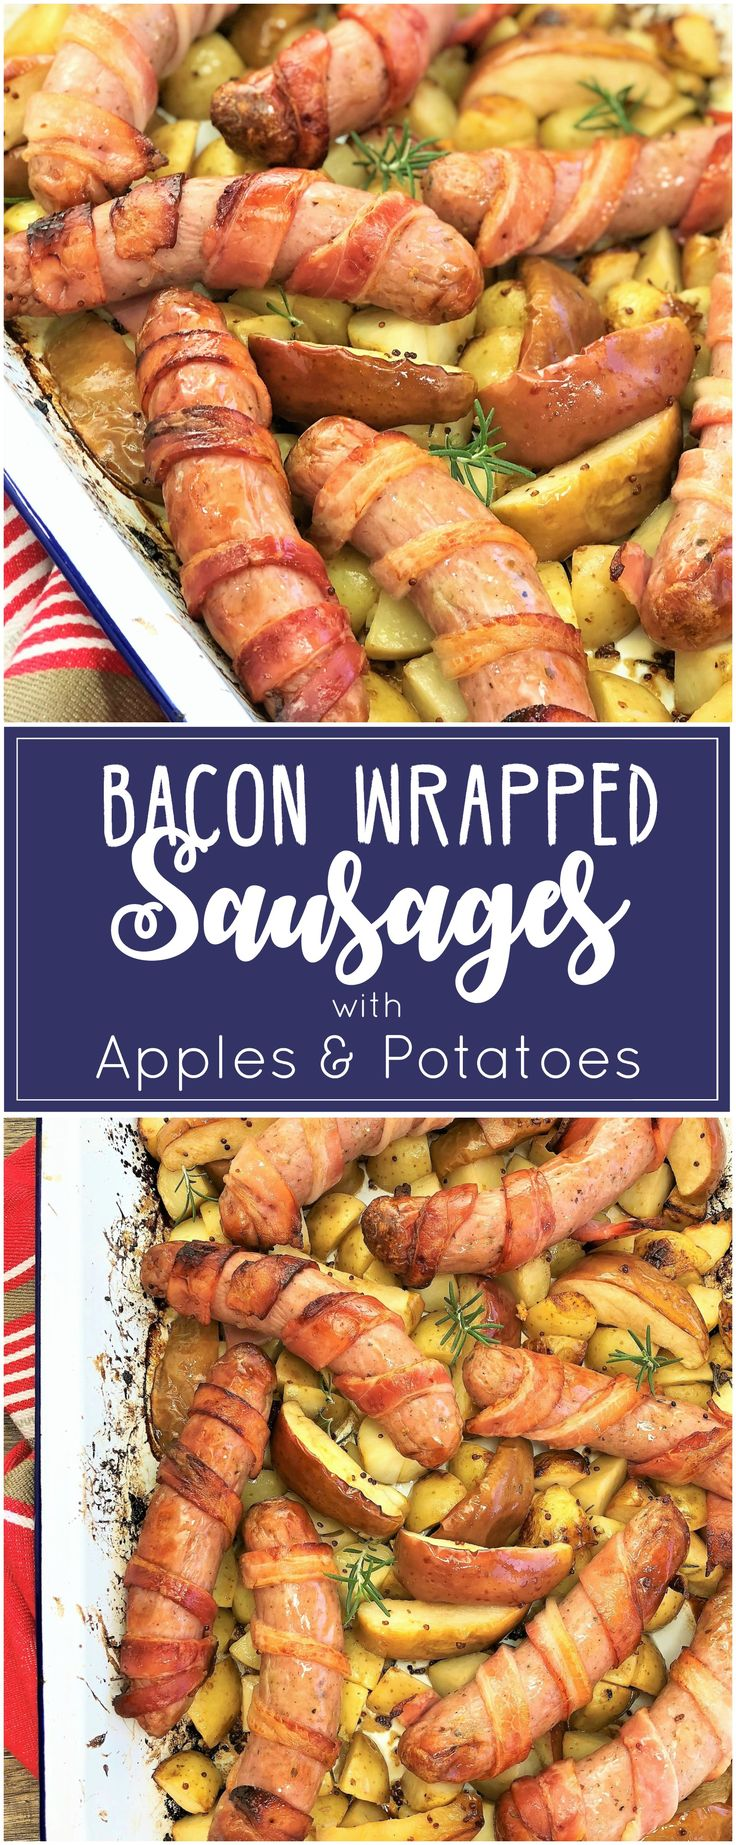 Bacon Wrapped Sausages with Apples & Potatoes | one pot | one pan | tray bake |